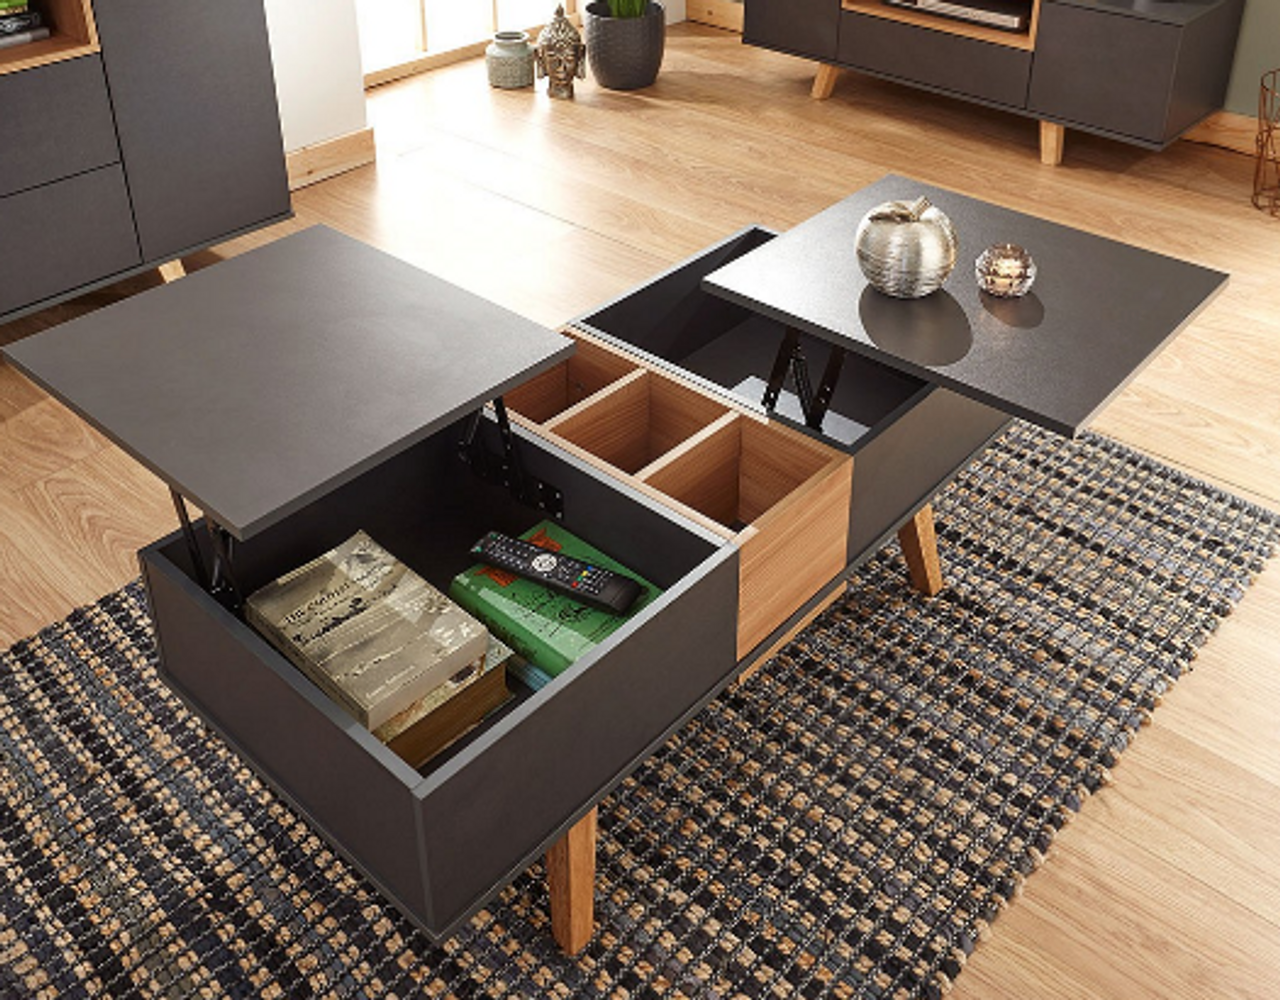 Modena Double Lift Up Coffee Table Free Delivery Own Furniture